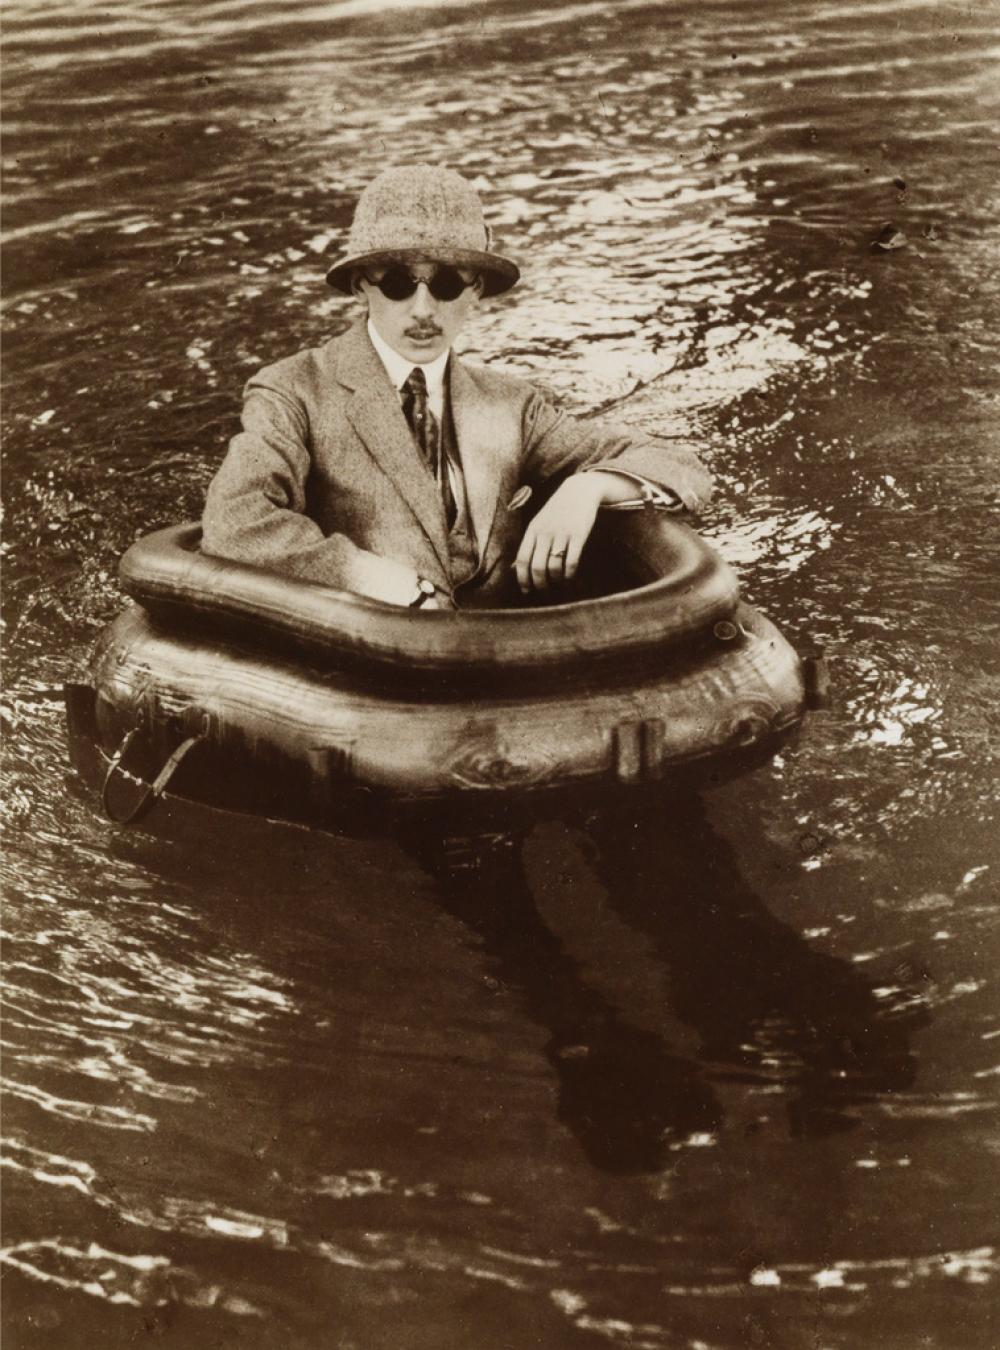 JACQUES-HENRI LARTIGUE (1894-1986) A Portfolio of Photographs.